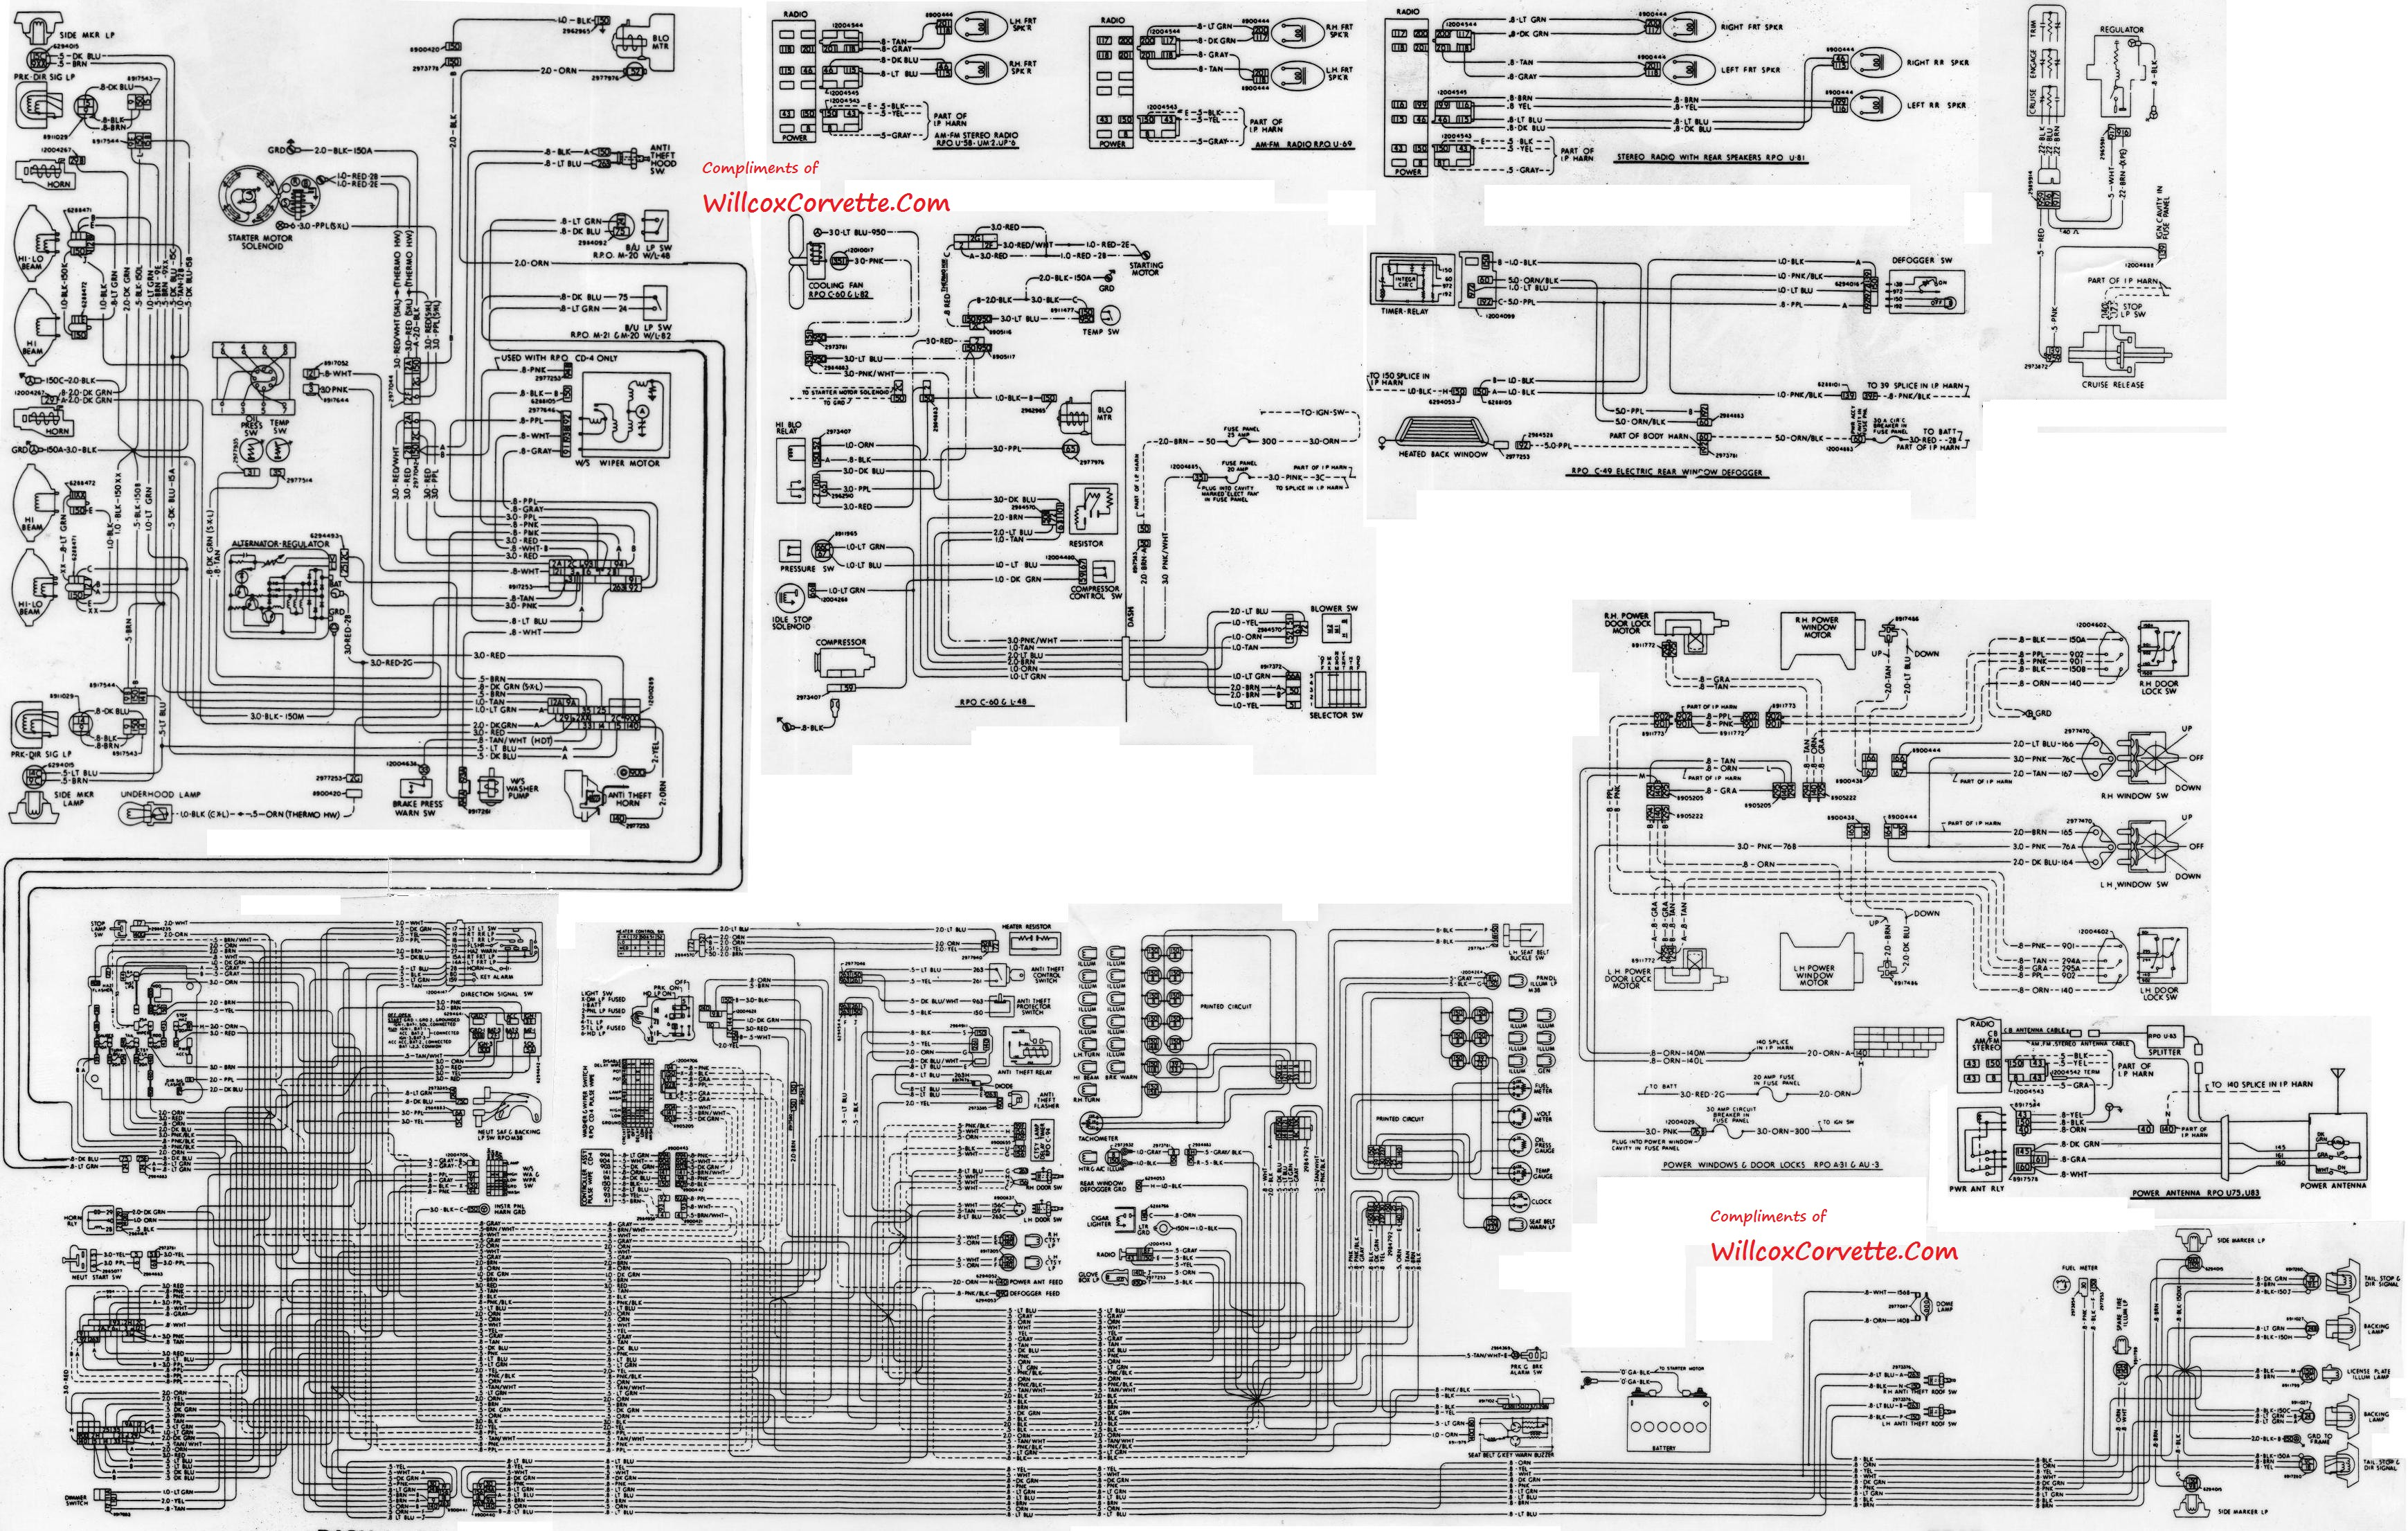 home c5 corvette wiring diagram 1976 corvette fuse box diagram rh lakitiki co c5 corvette headlight wiring diagram c5 corvette wiring diagram pdf